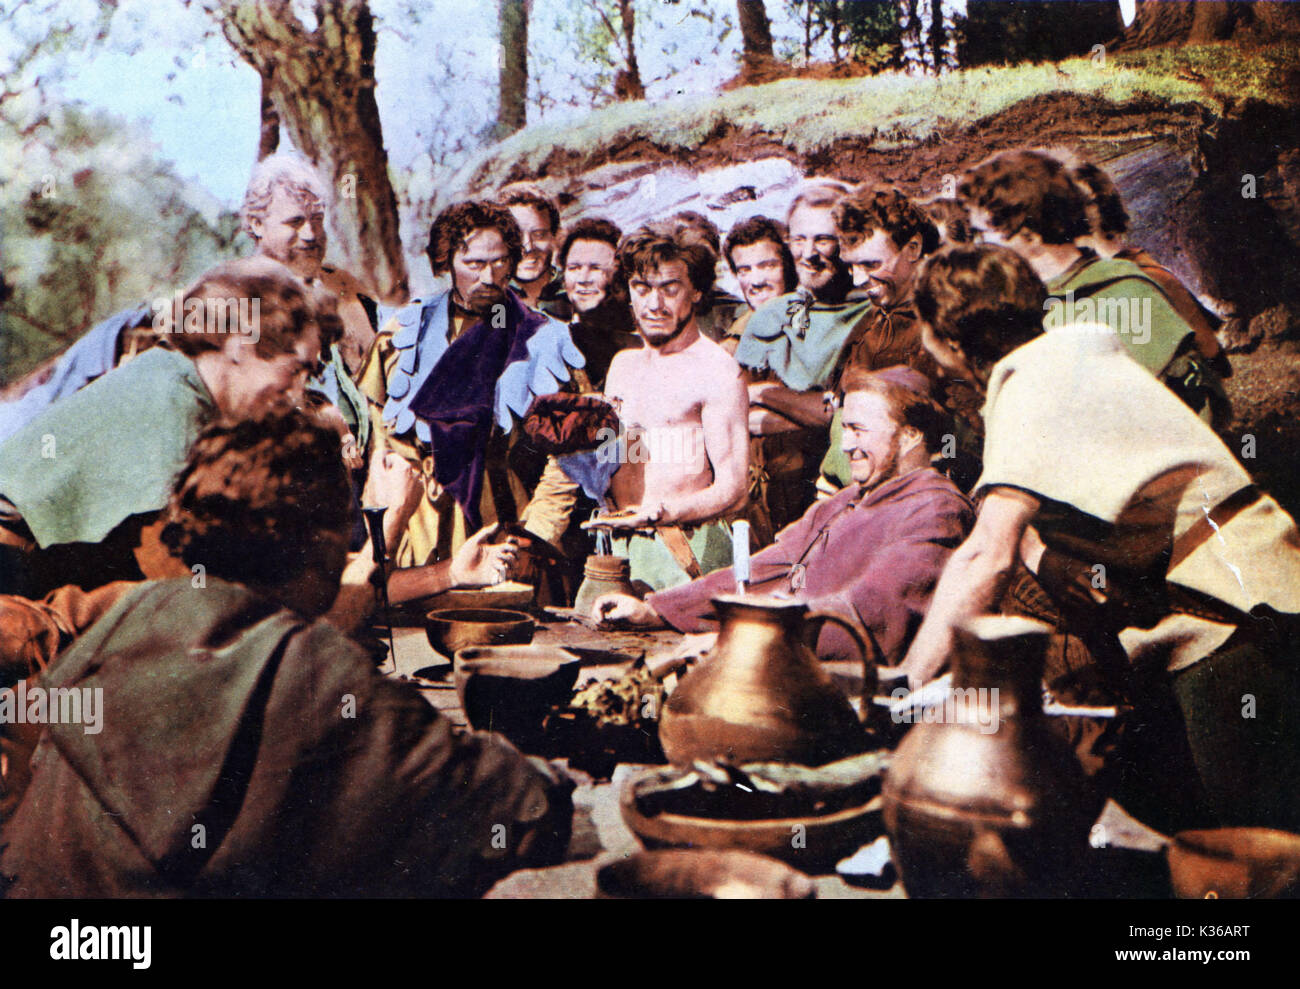 THE STORY OF ROBIN HOOD AND HIS MERRIE MEN JAMES HAYTER AS FRIAR TUCK A DISNEY FILM     Date: 1952 - Stock Image